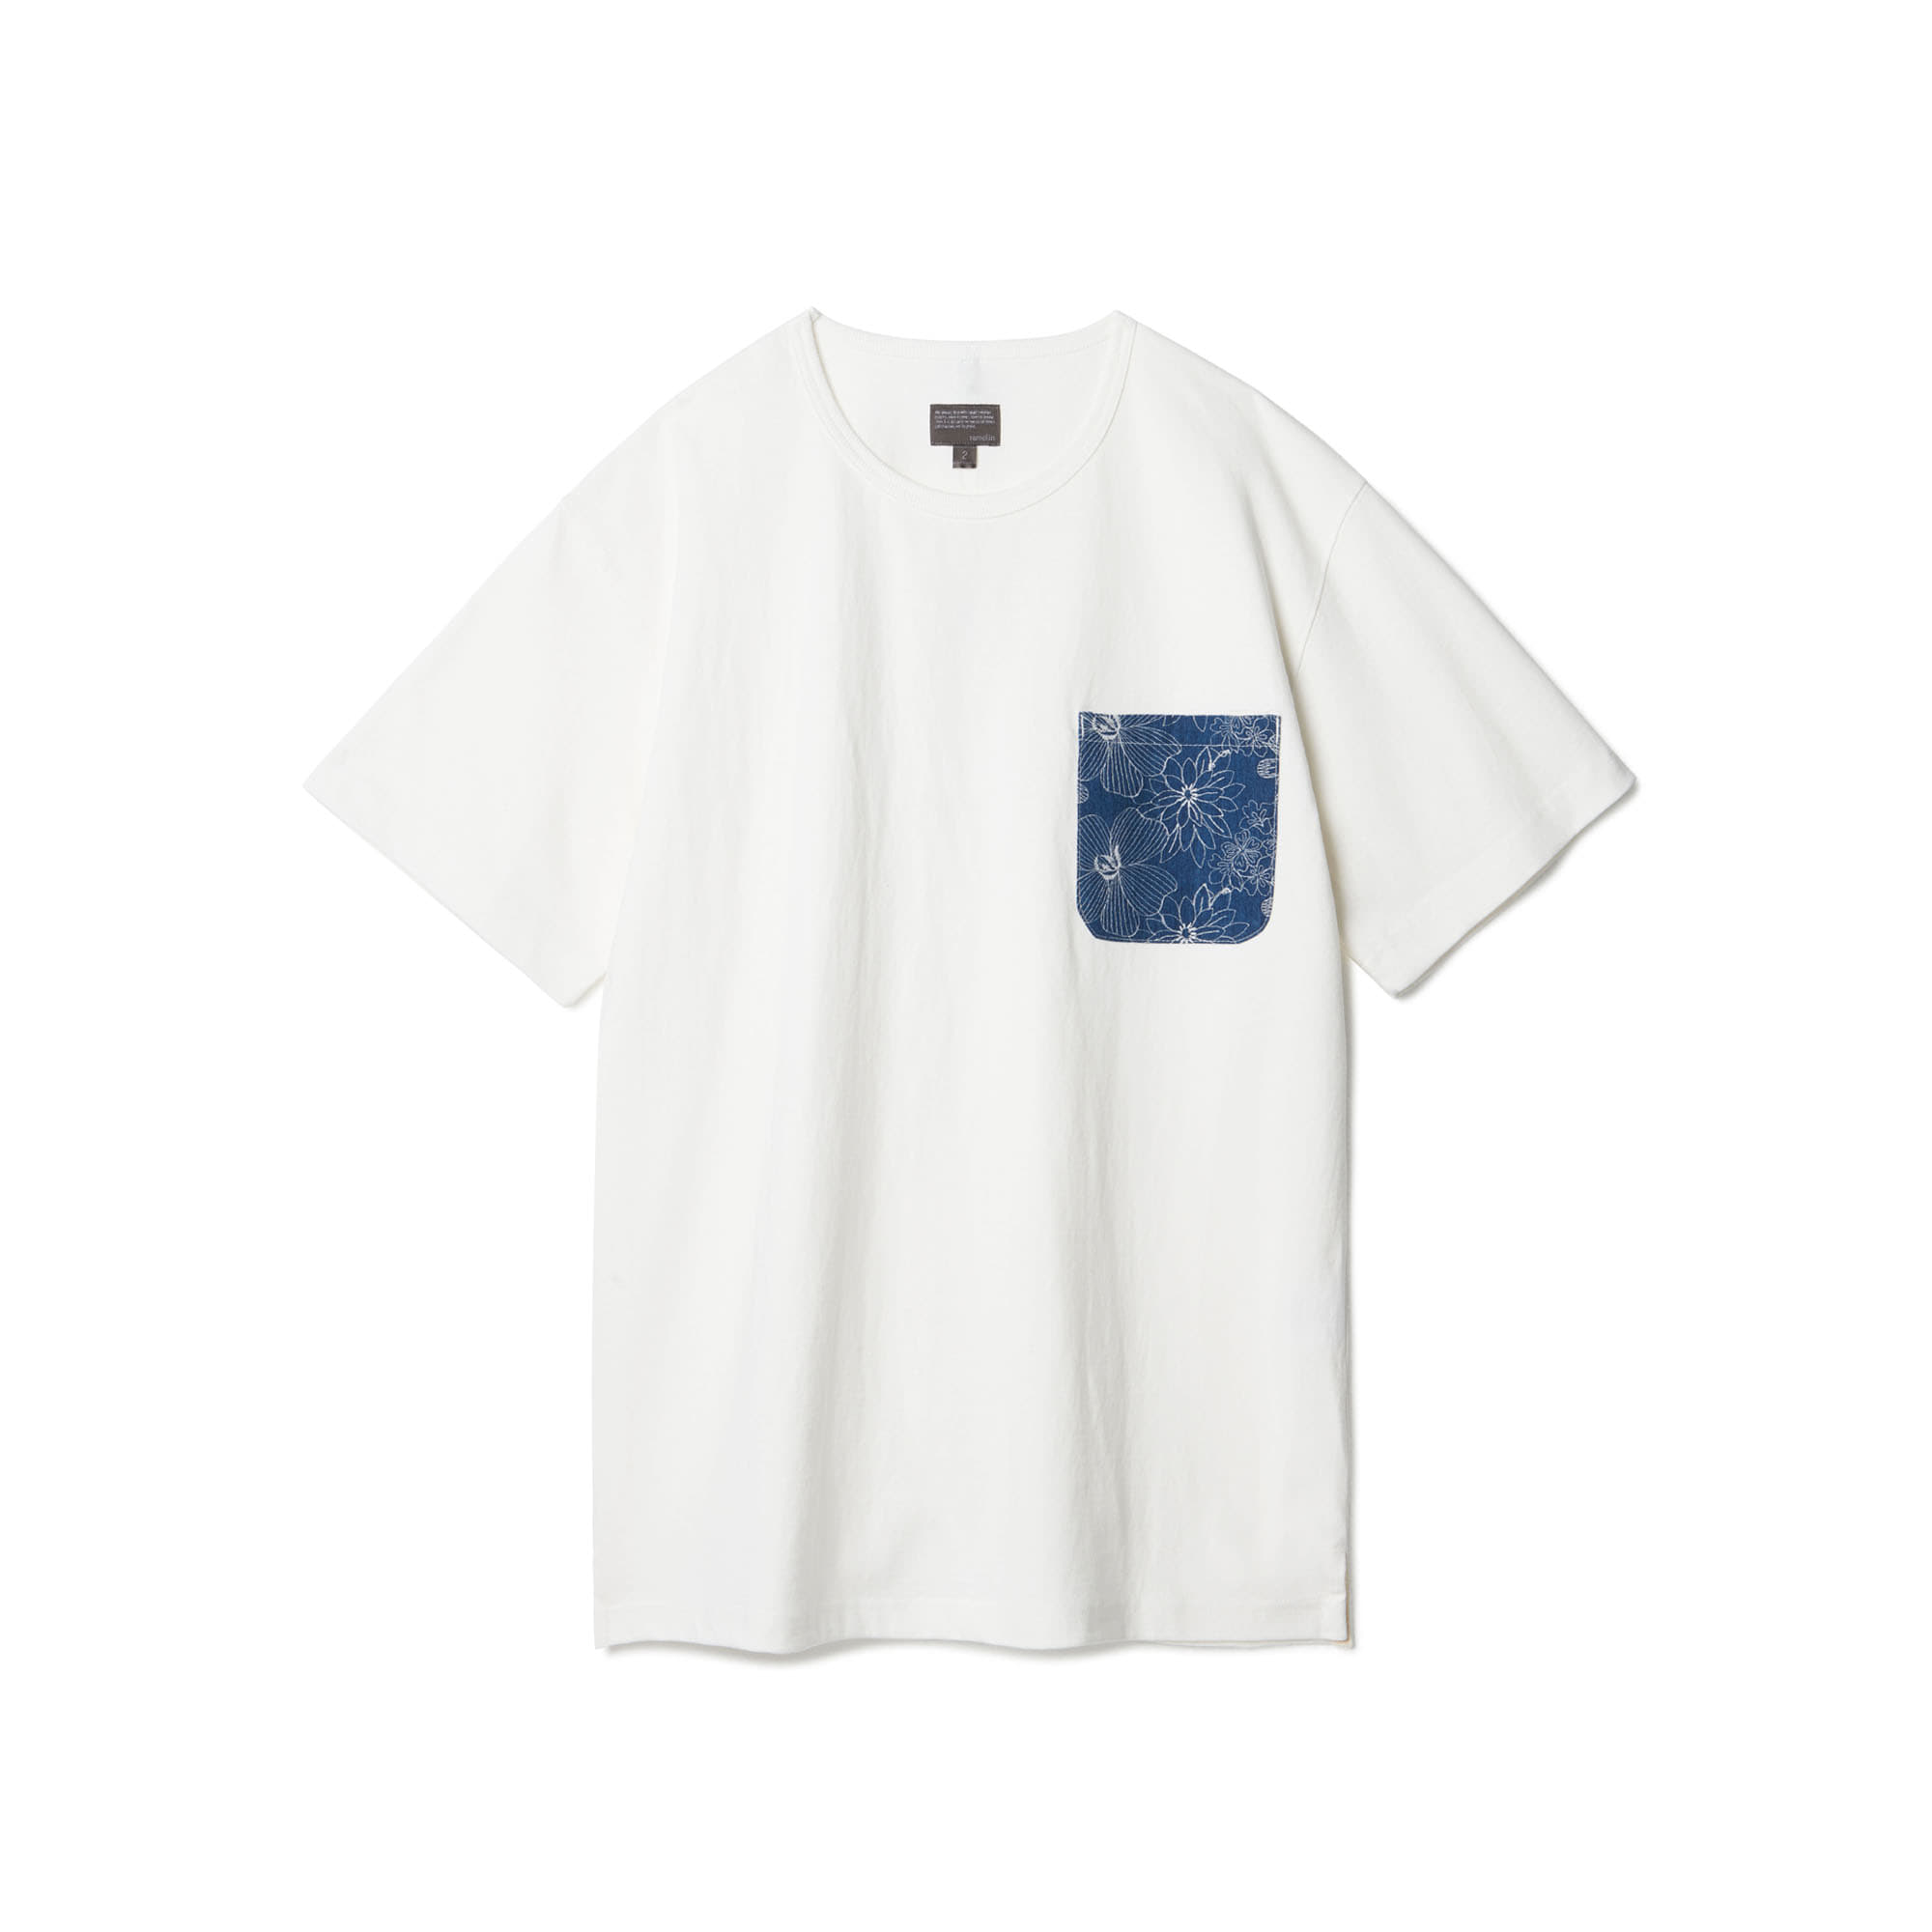 [Restock] Flower Embroidery Pocket T-shirts White